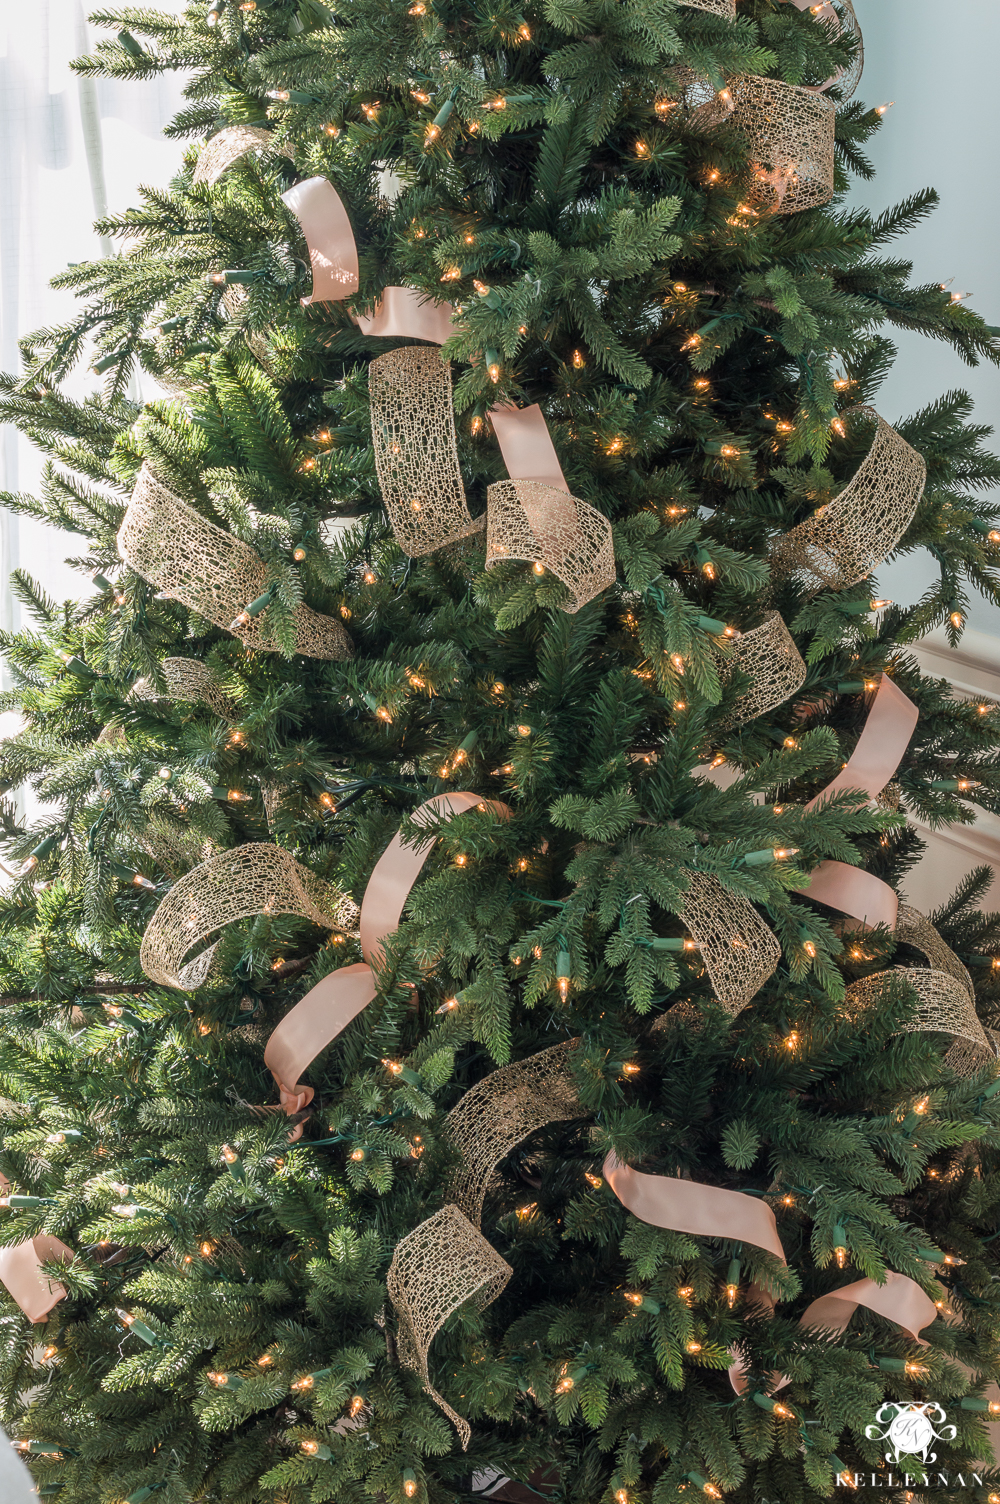 How to make ribbon look natural in a Christmas tree